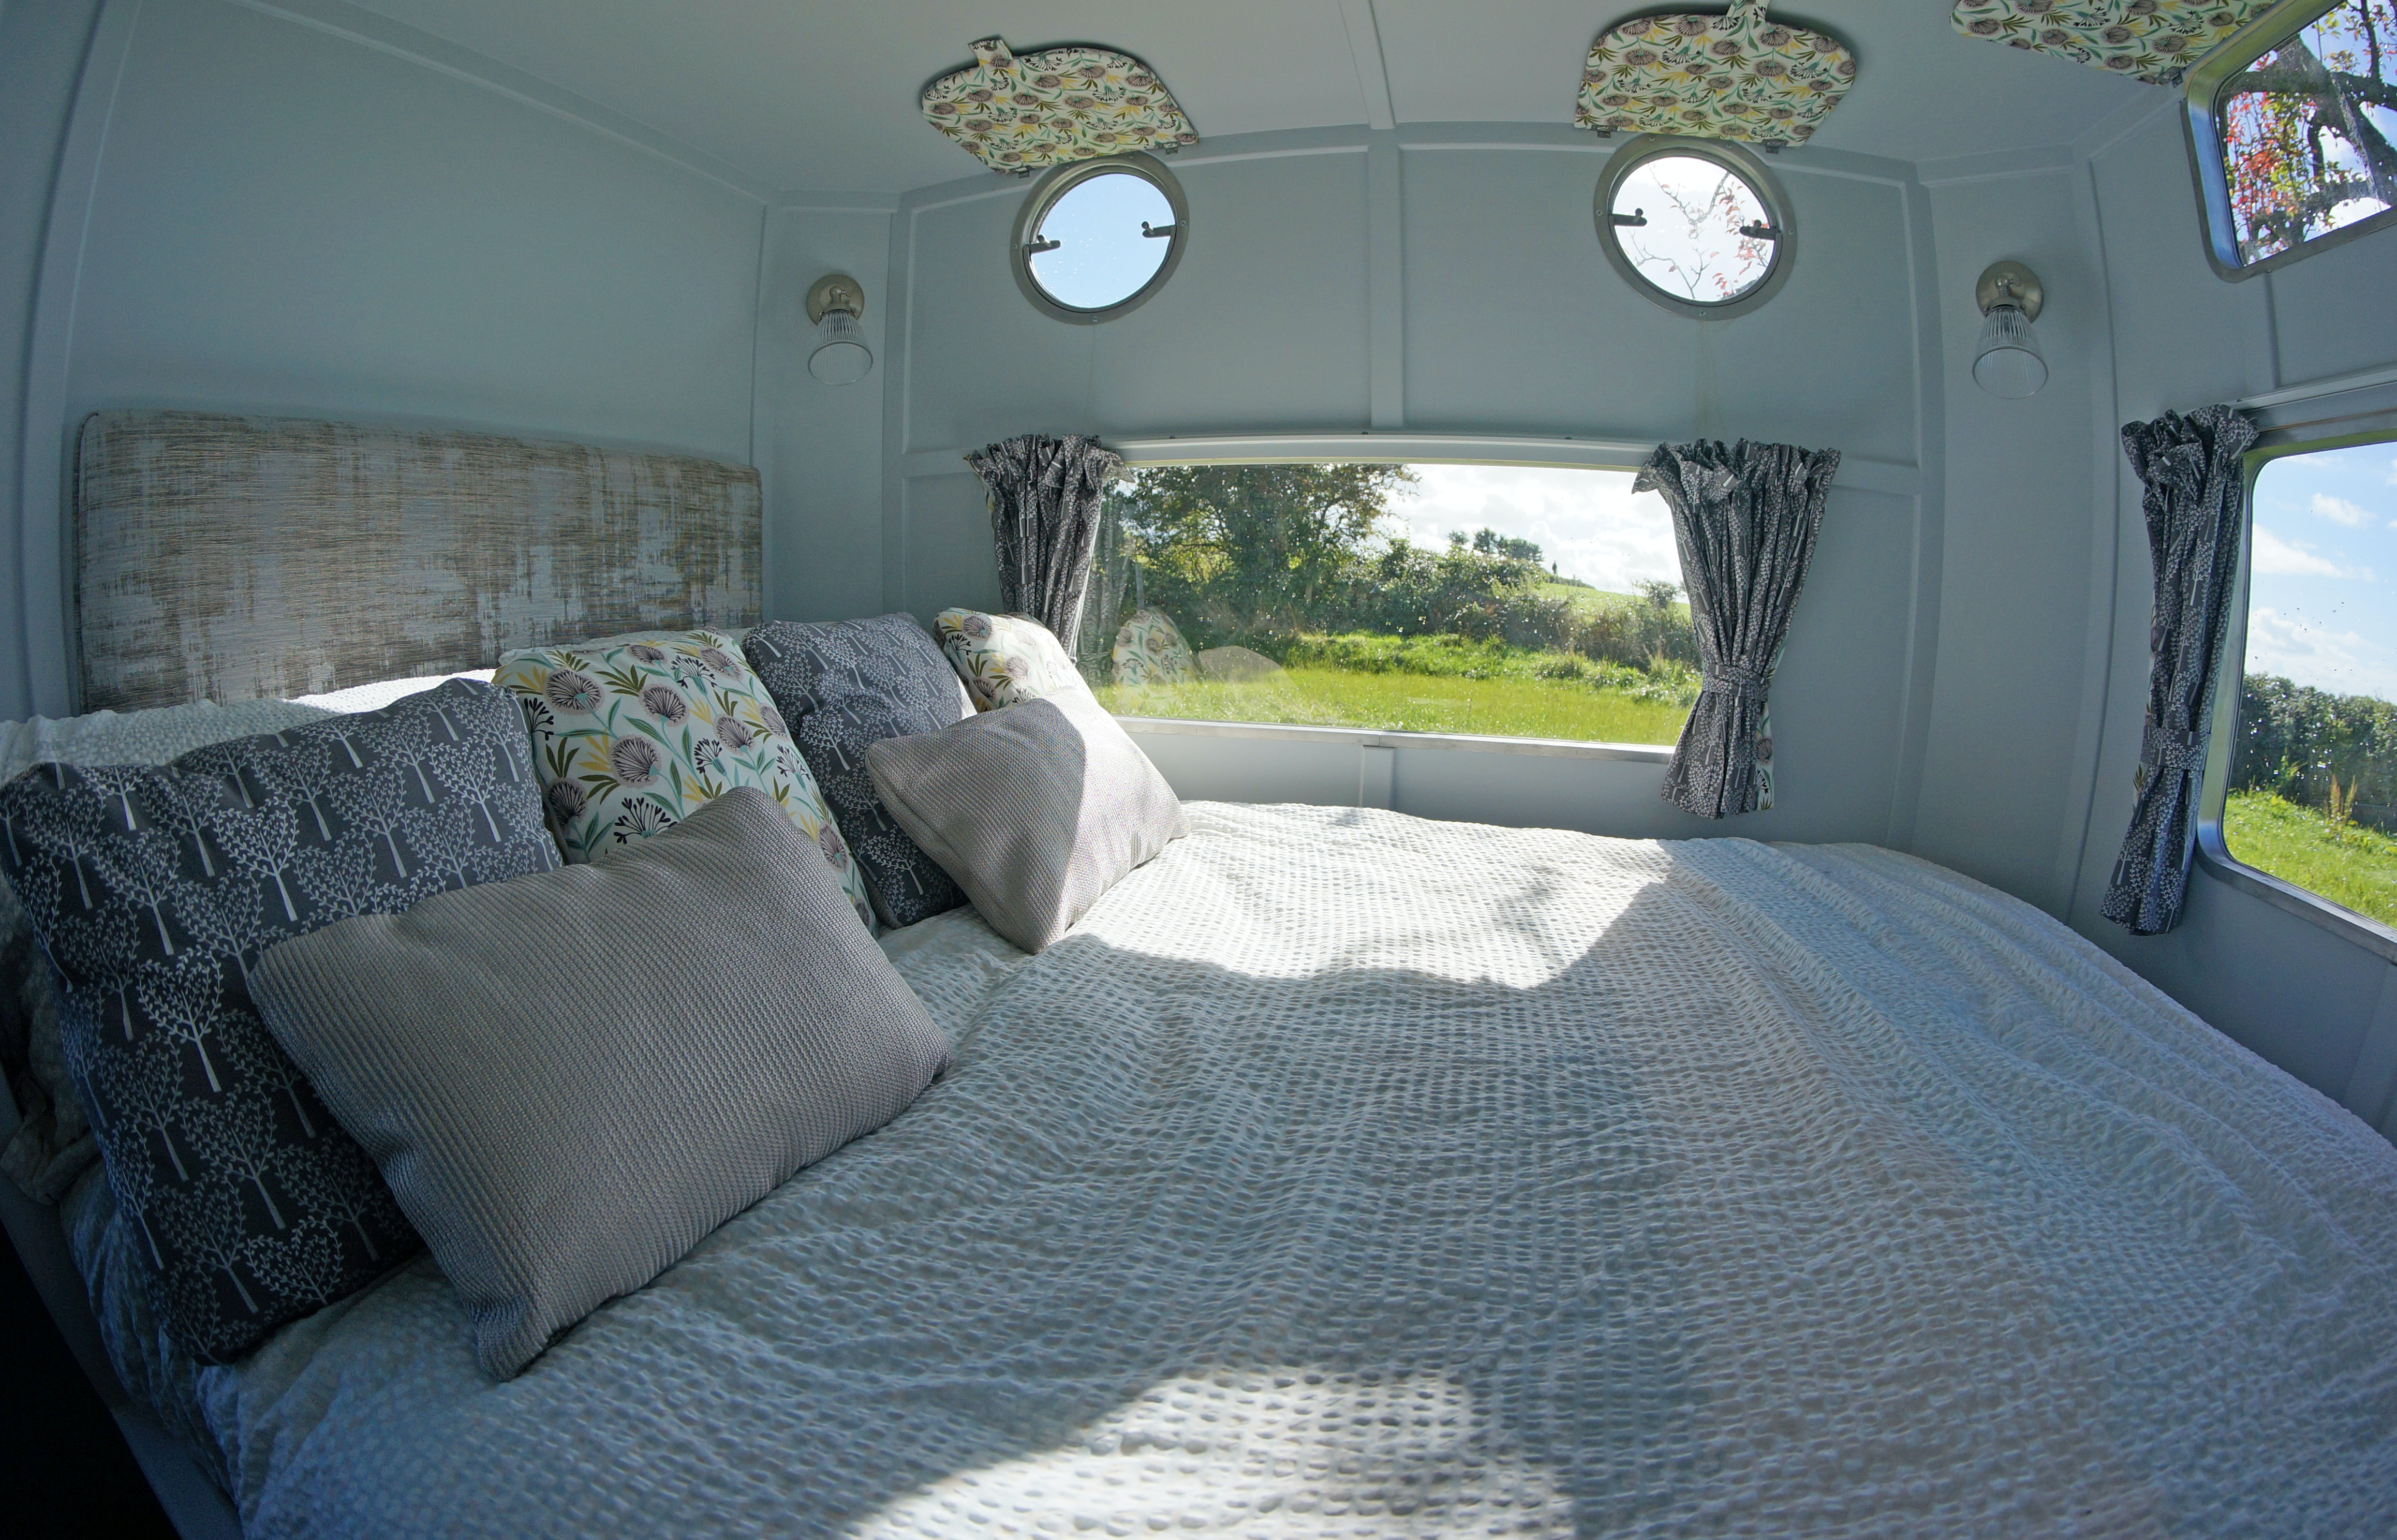 Popular Since Winning, Ali Says The Glamping Orchard Has Seen A Surge Of Twitter Followers And Bookings For Its 1950s The Warwick Knight, One Of The Worlds Rarest Caravans, Which Recently Featured On George Clarkes Amazing Spaces,